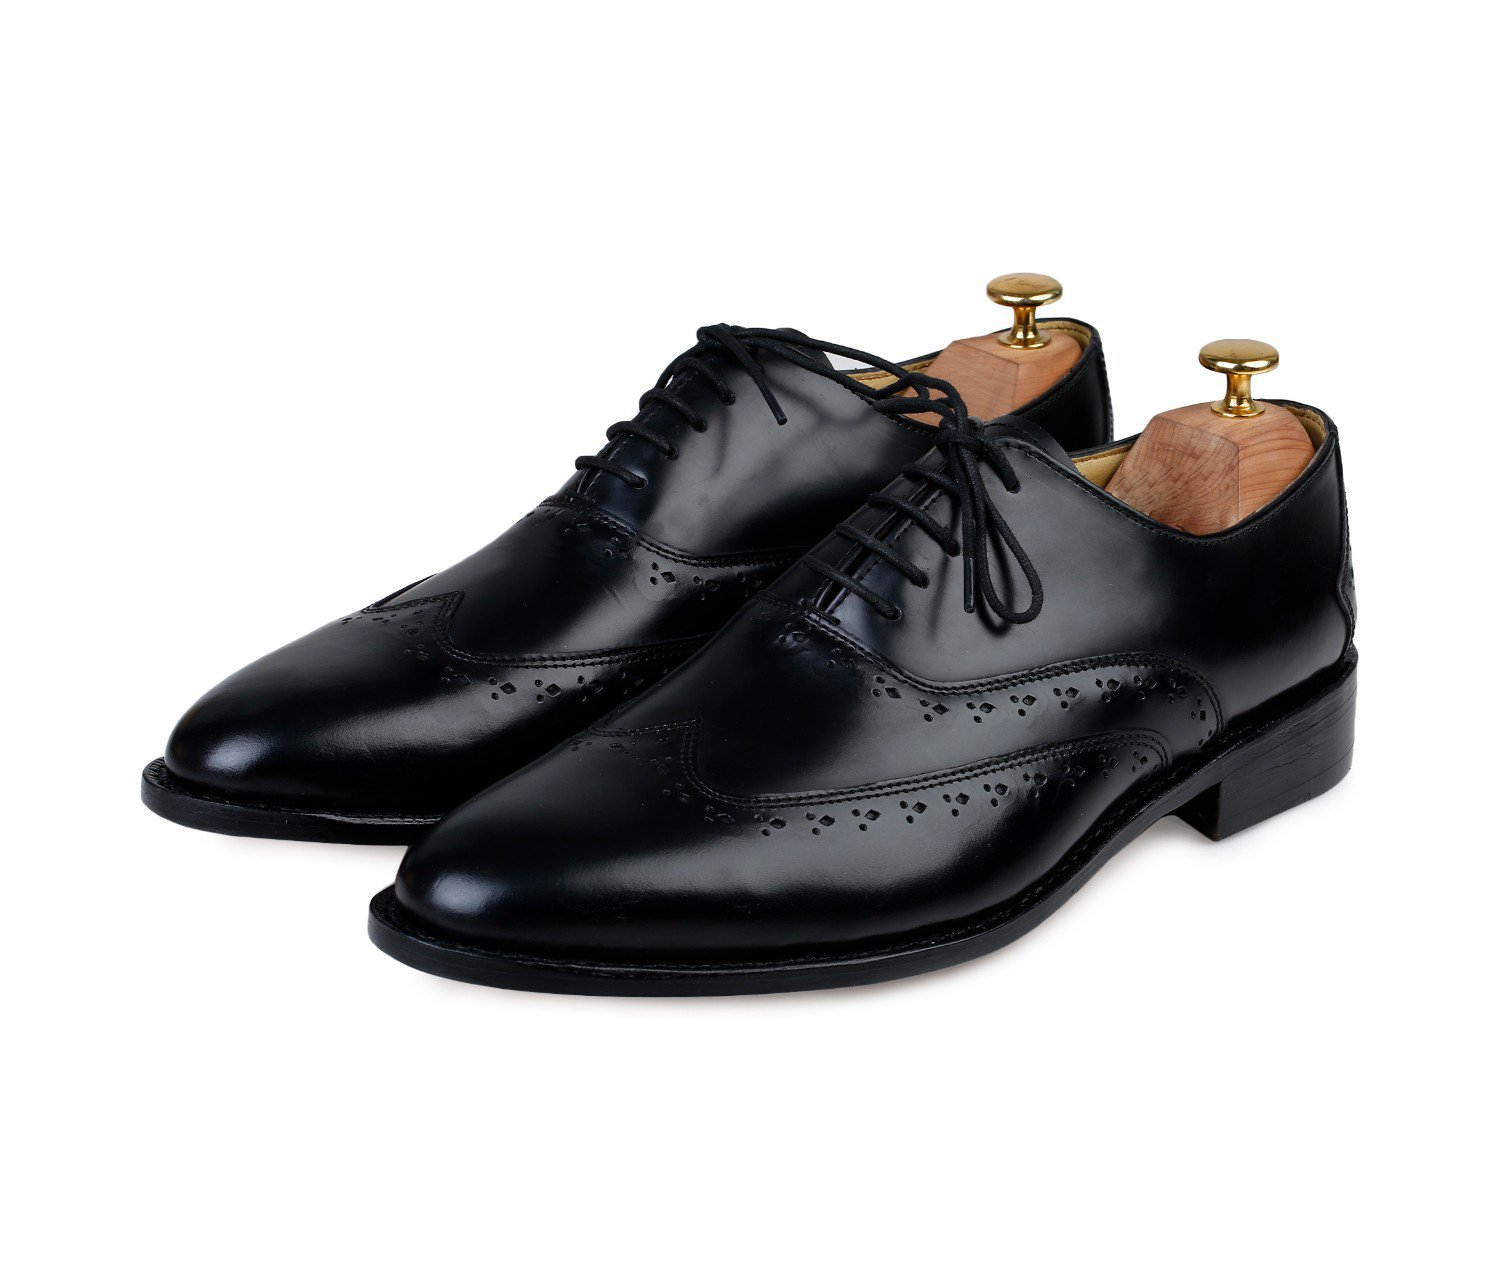 Lethato Wingtip Oxford Goodyear Welted Formal Handmade Leather Dress Shoes